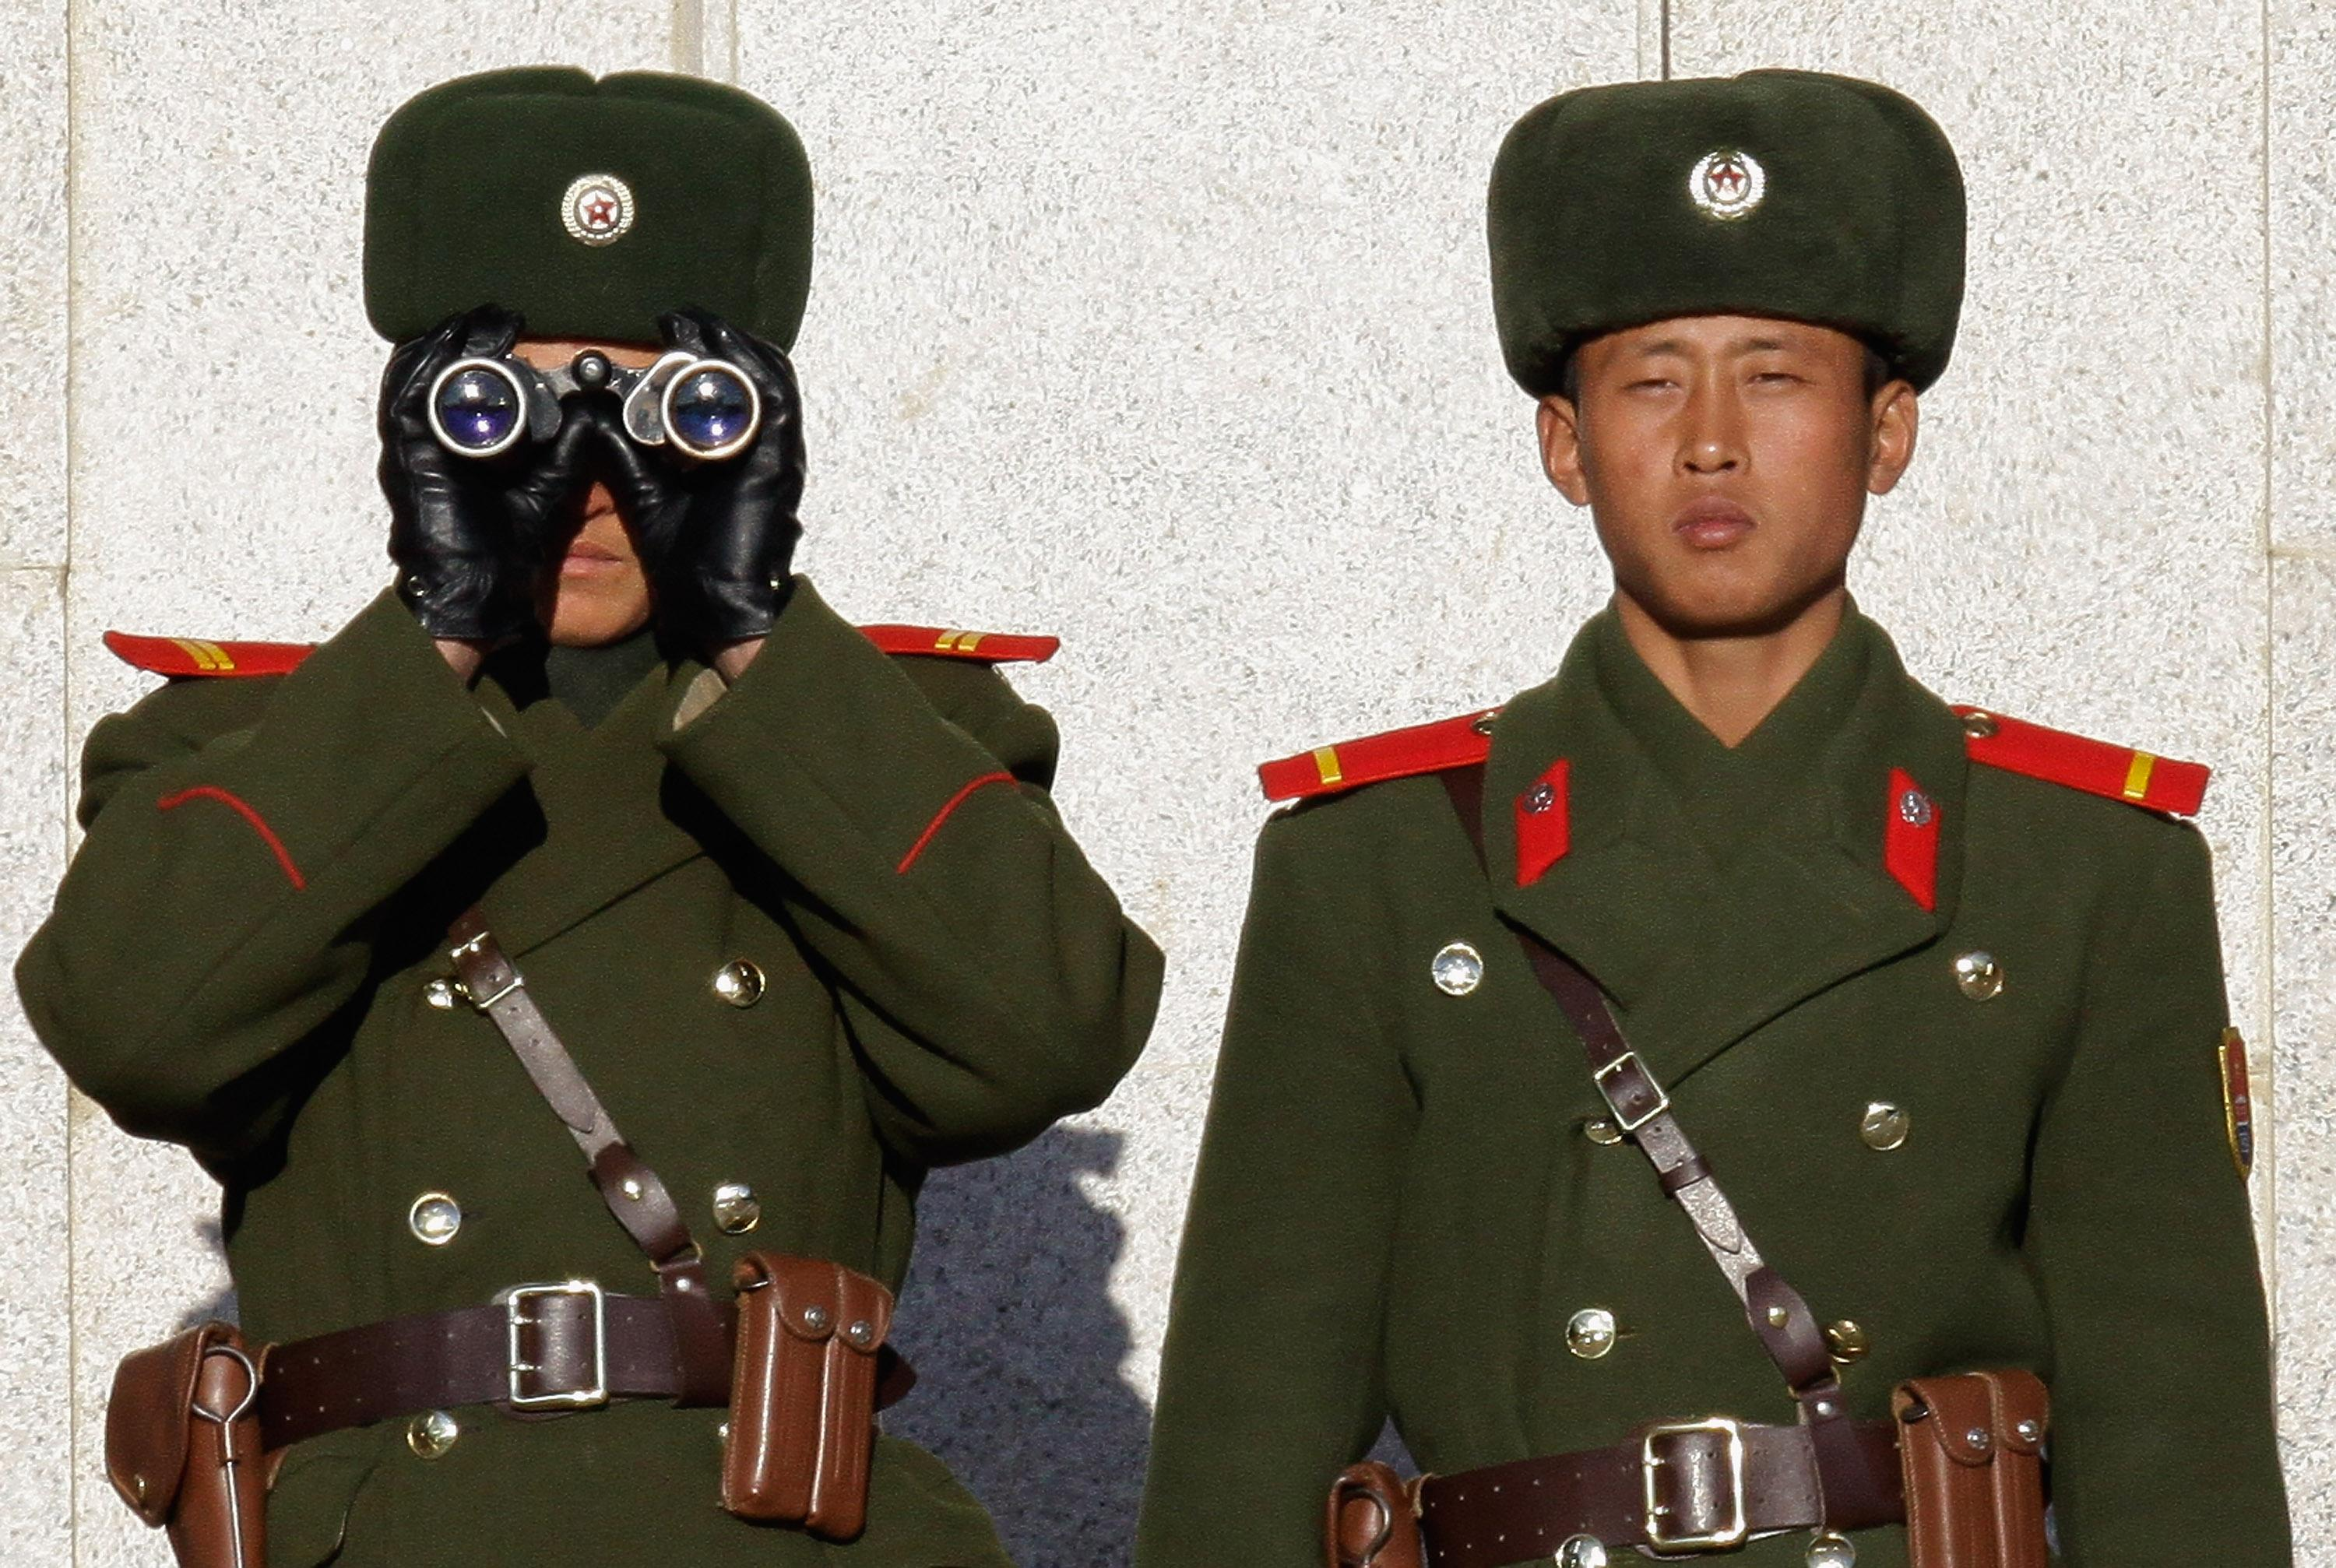 North Korea's Political Defections On The Rise